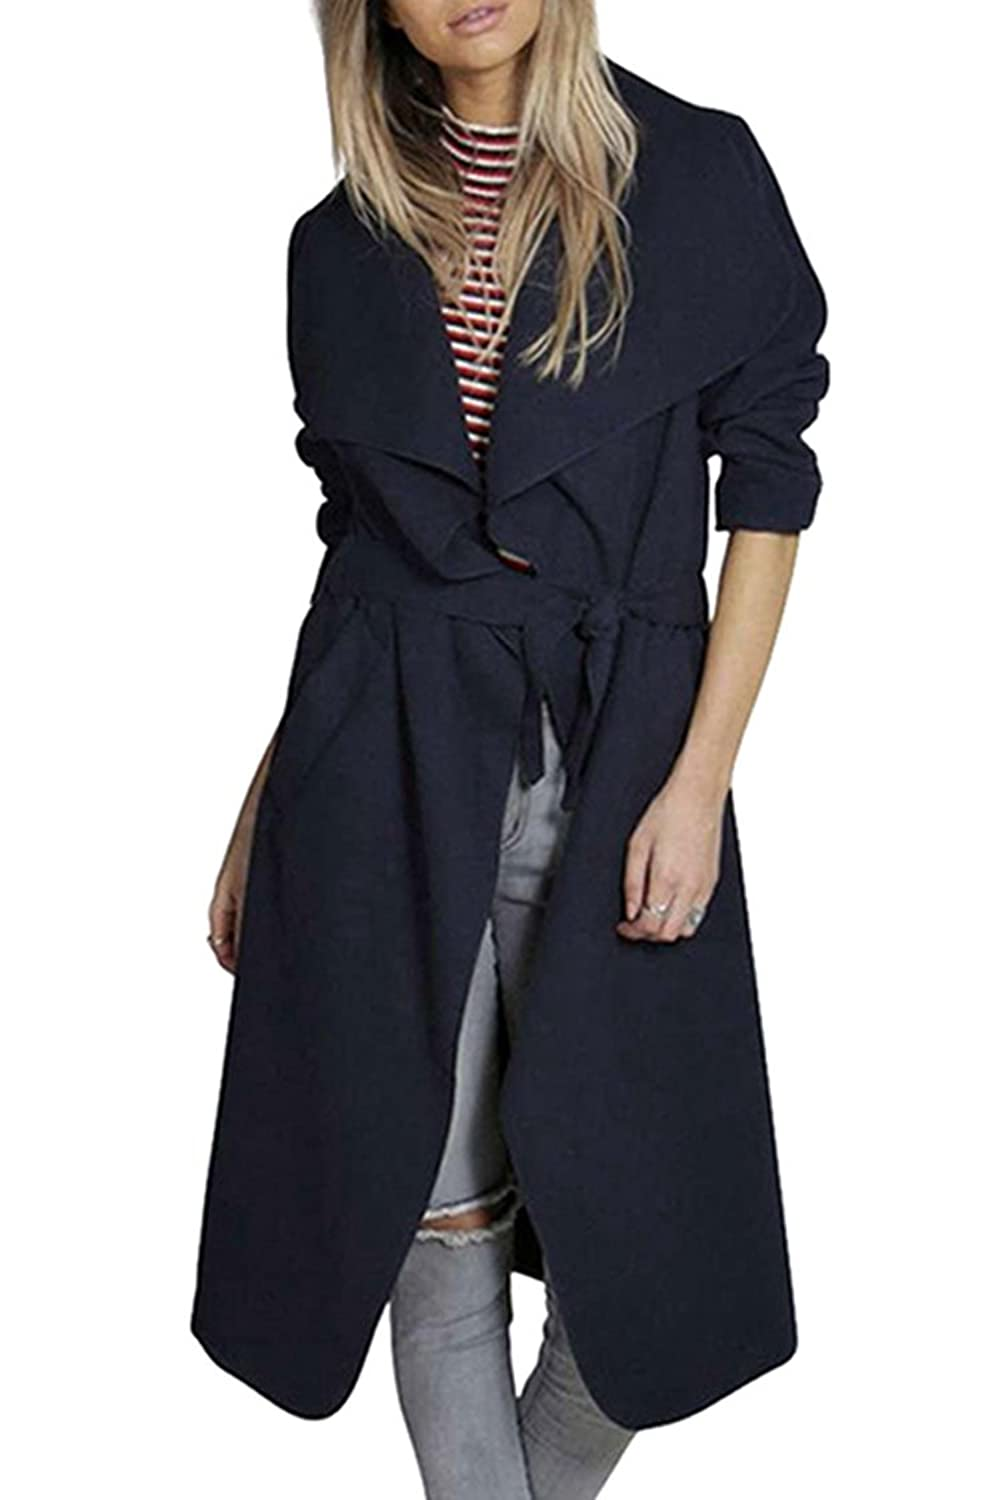 Pink Queen Women's Fall Casual Fashion Long Wool Overcoat Trench Coat